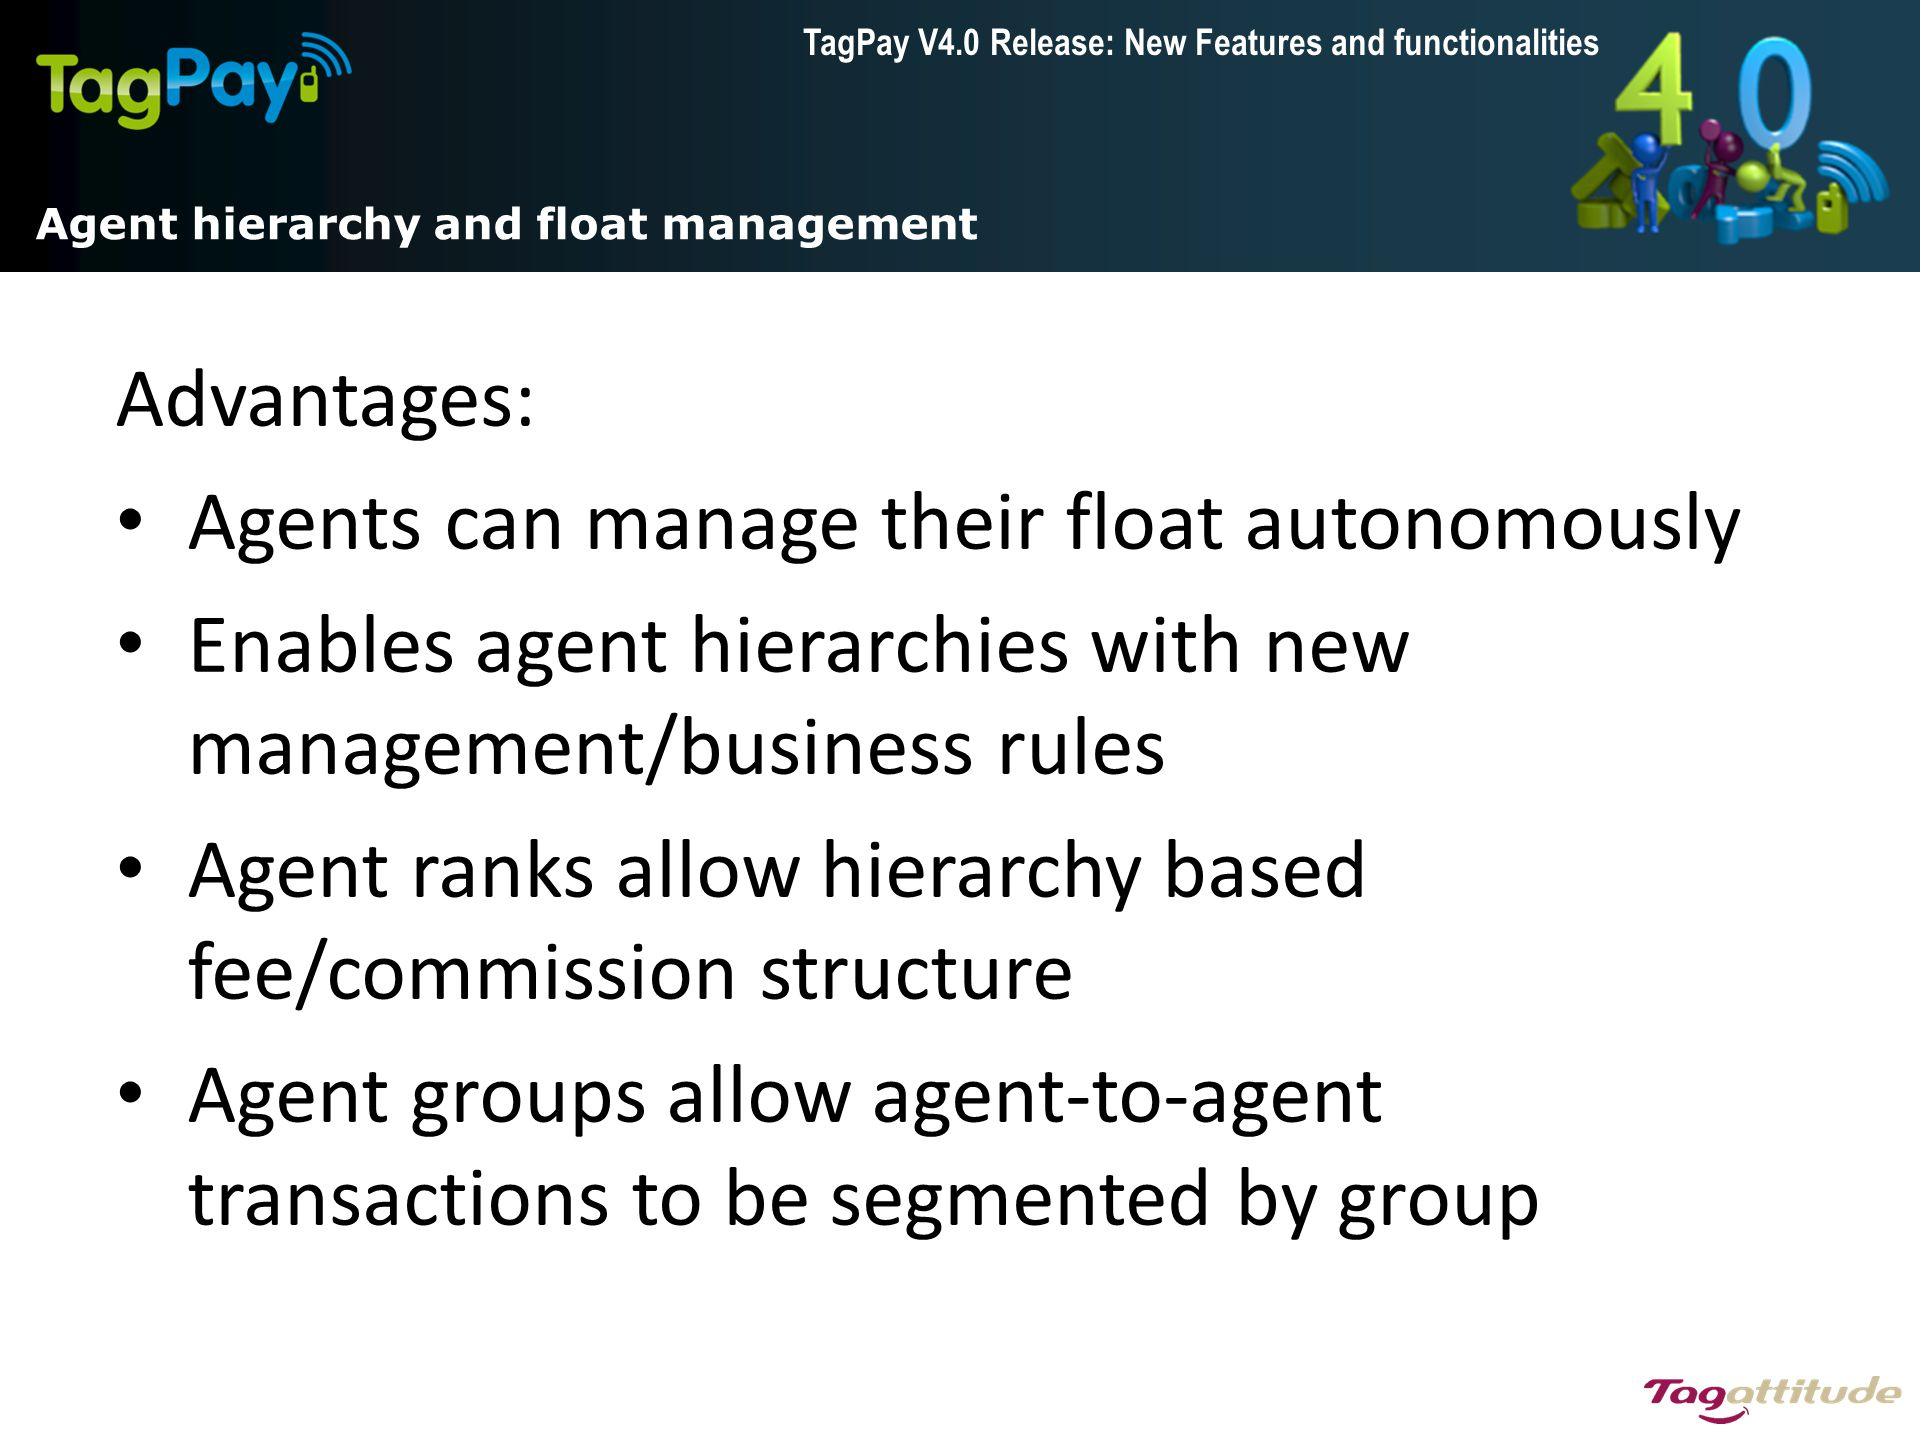 Agent hierarchy and float management